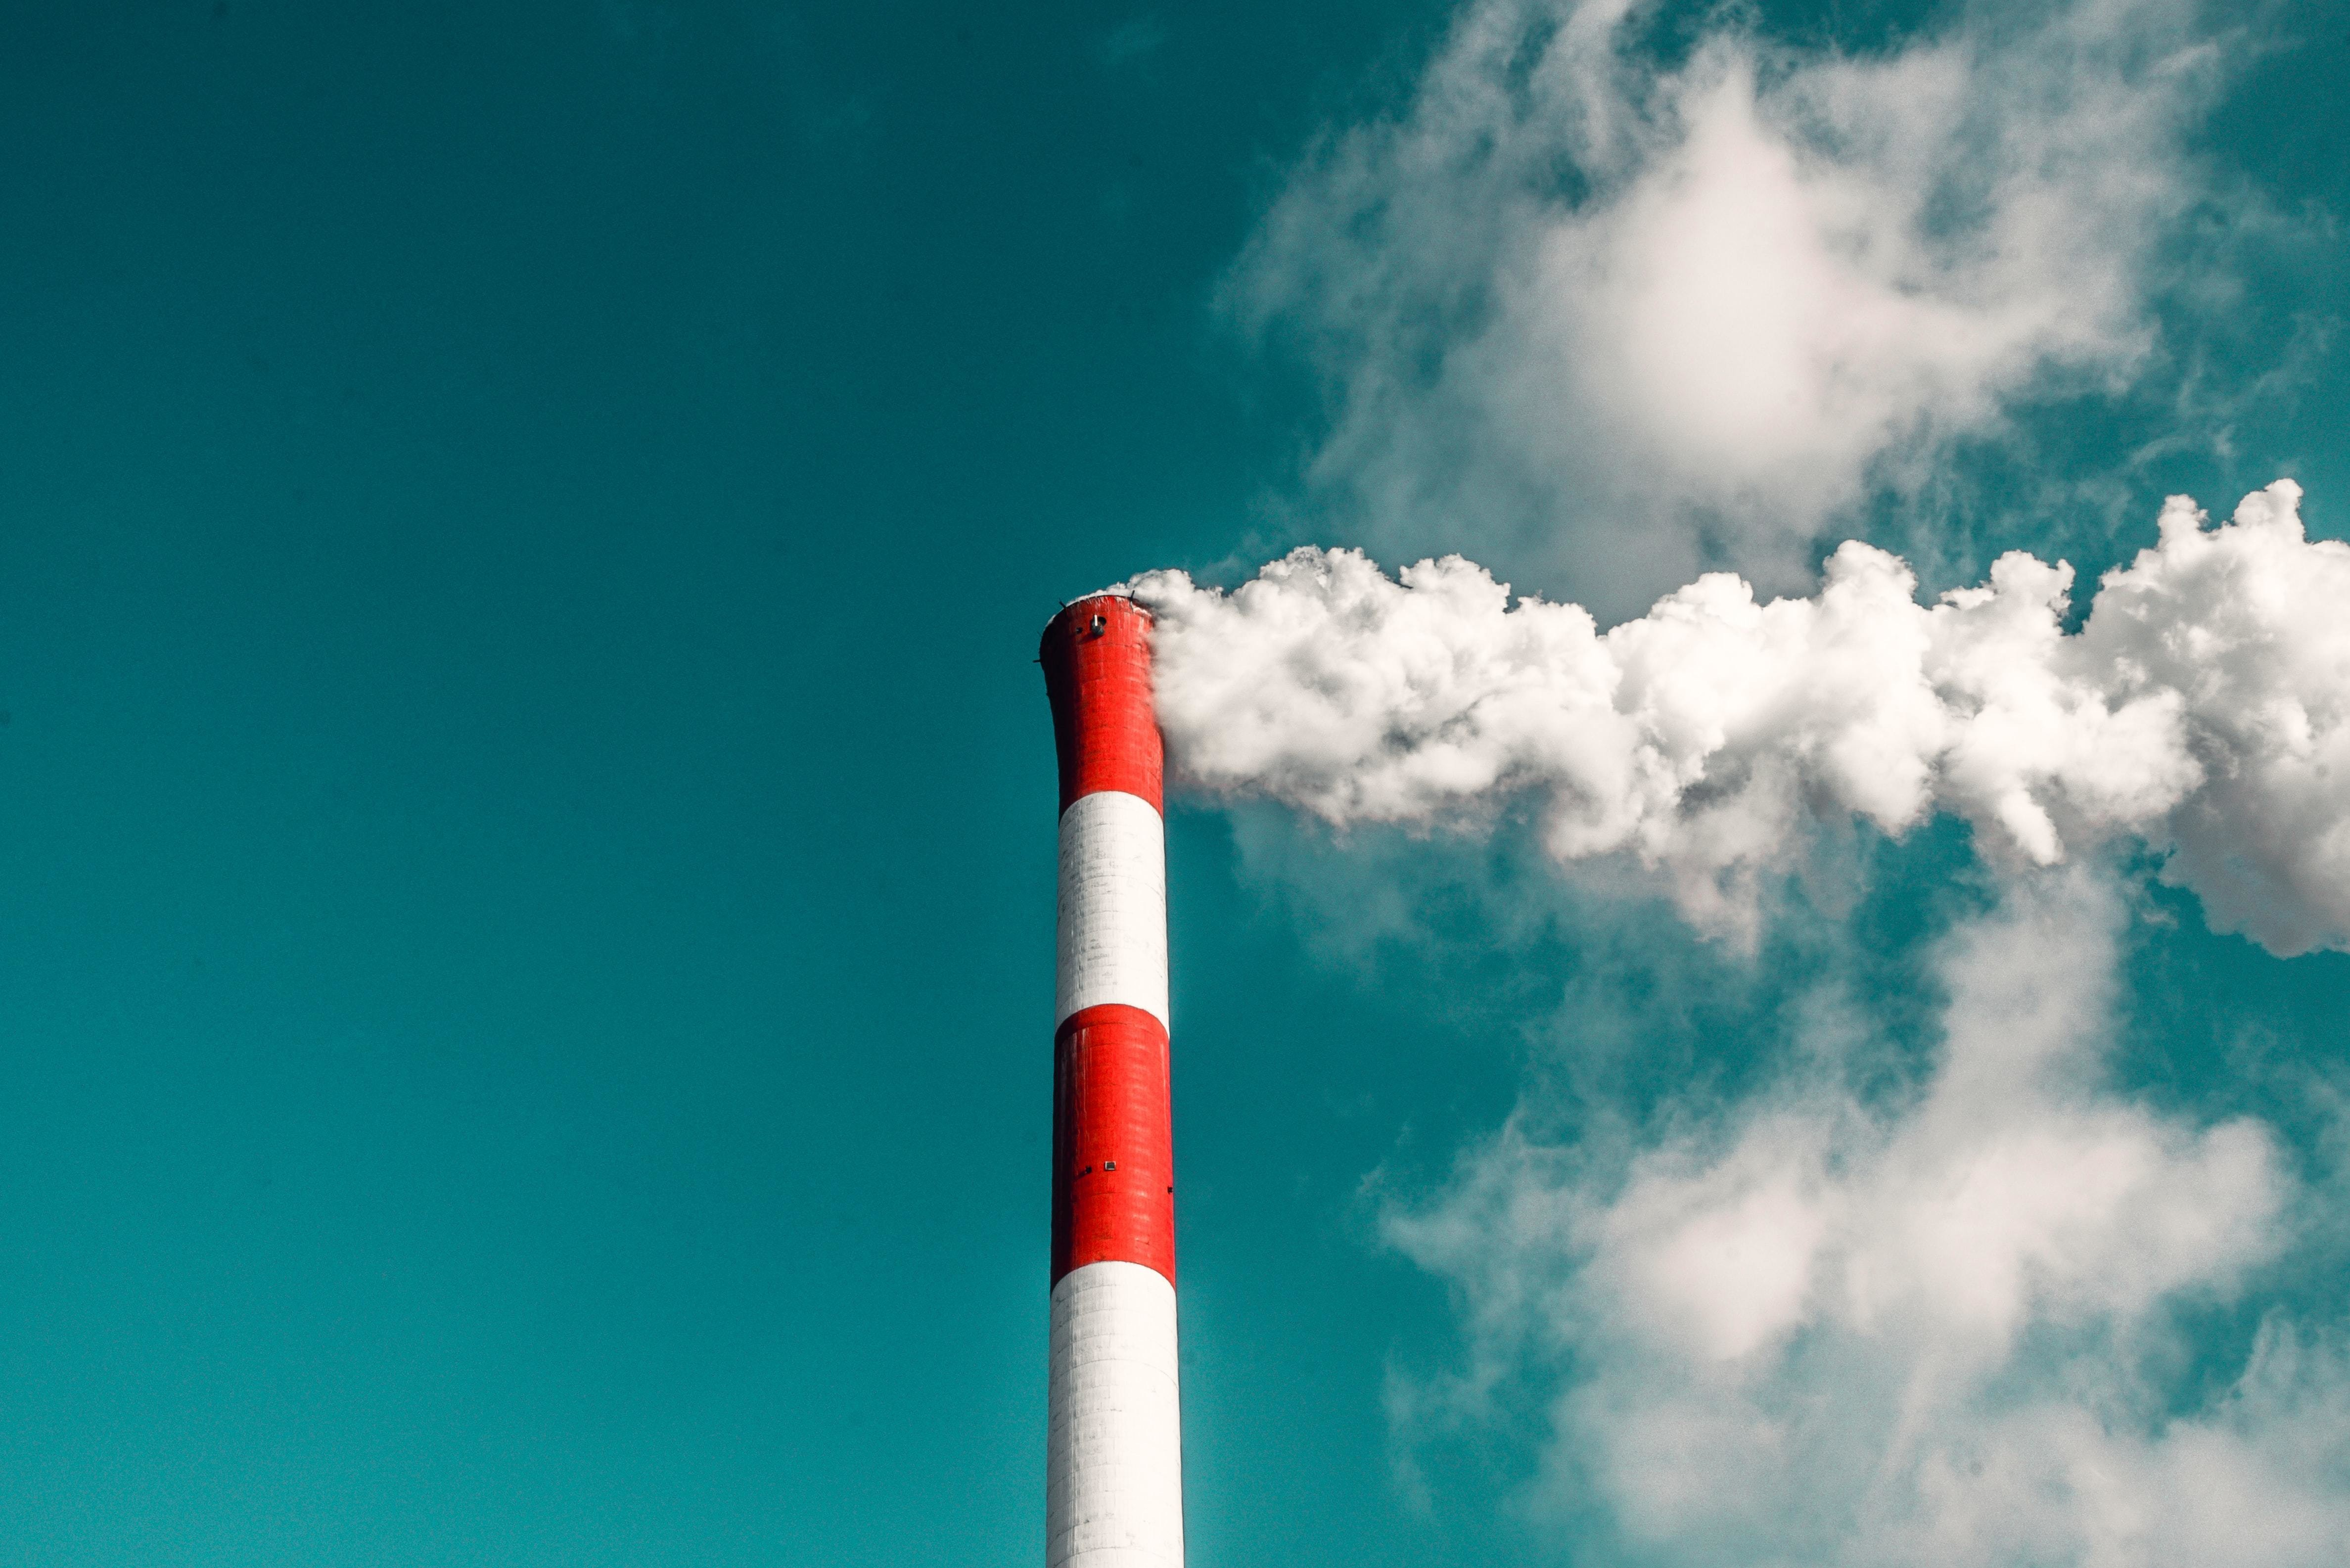 How can we mobilise the private sector to support the scaling of carbon capture technologies?